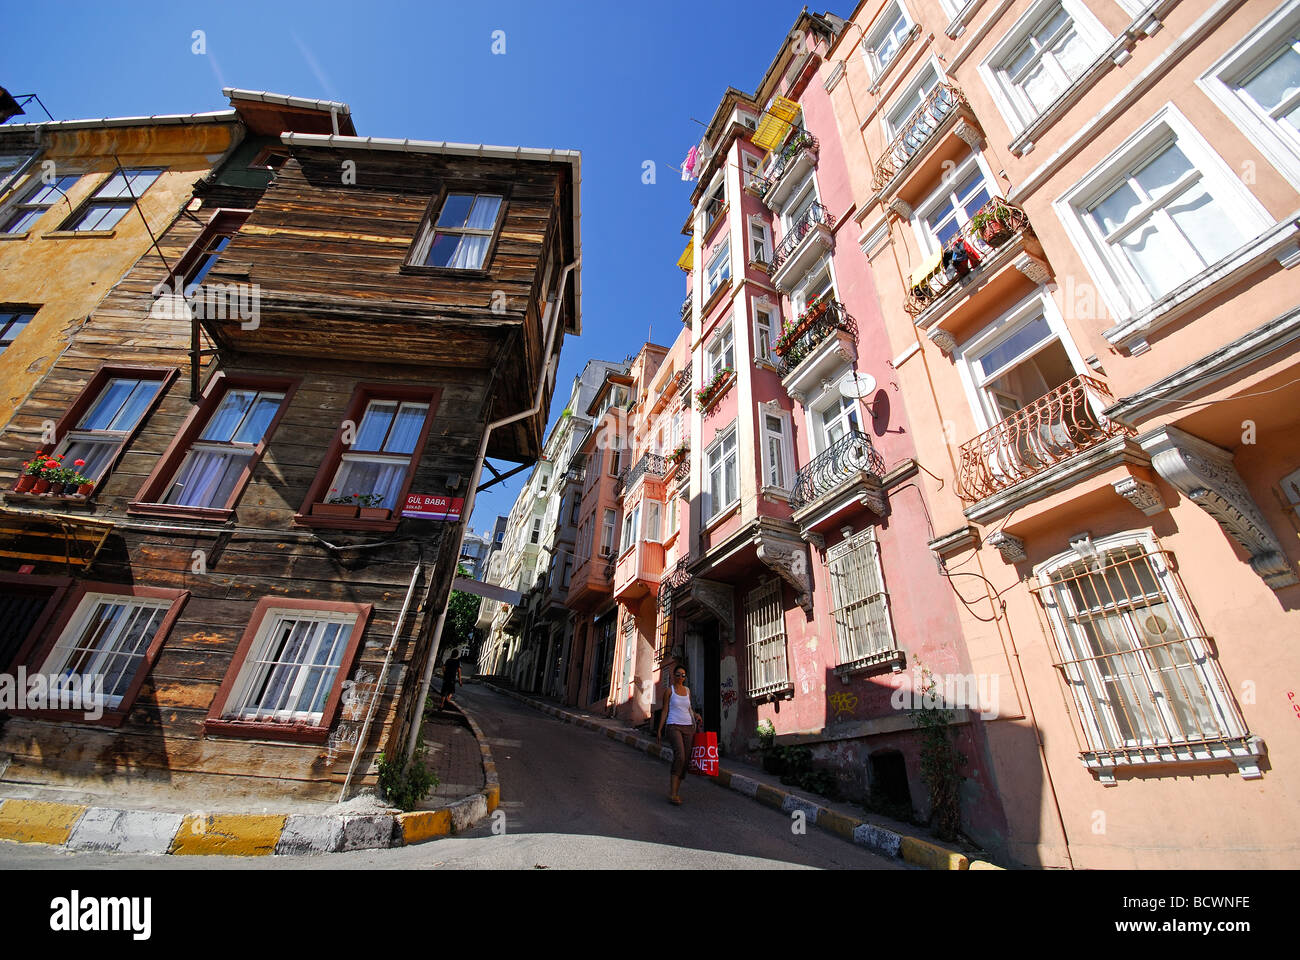 ISTANBUL, TURKEY. A street in Beyoglu district. 2009. - Stock Image